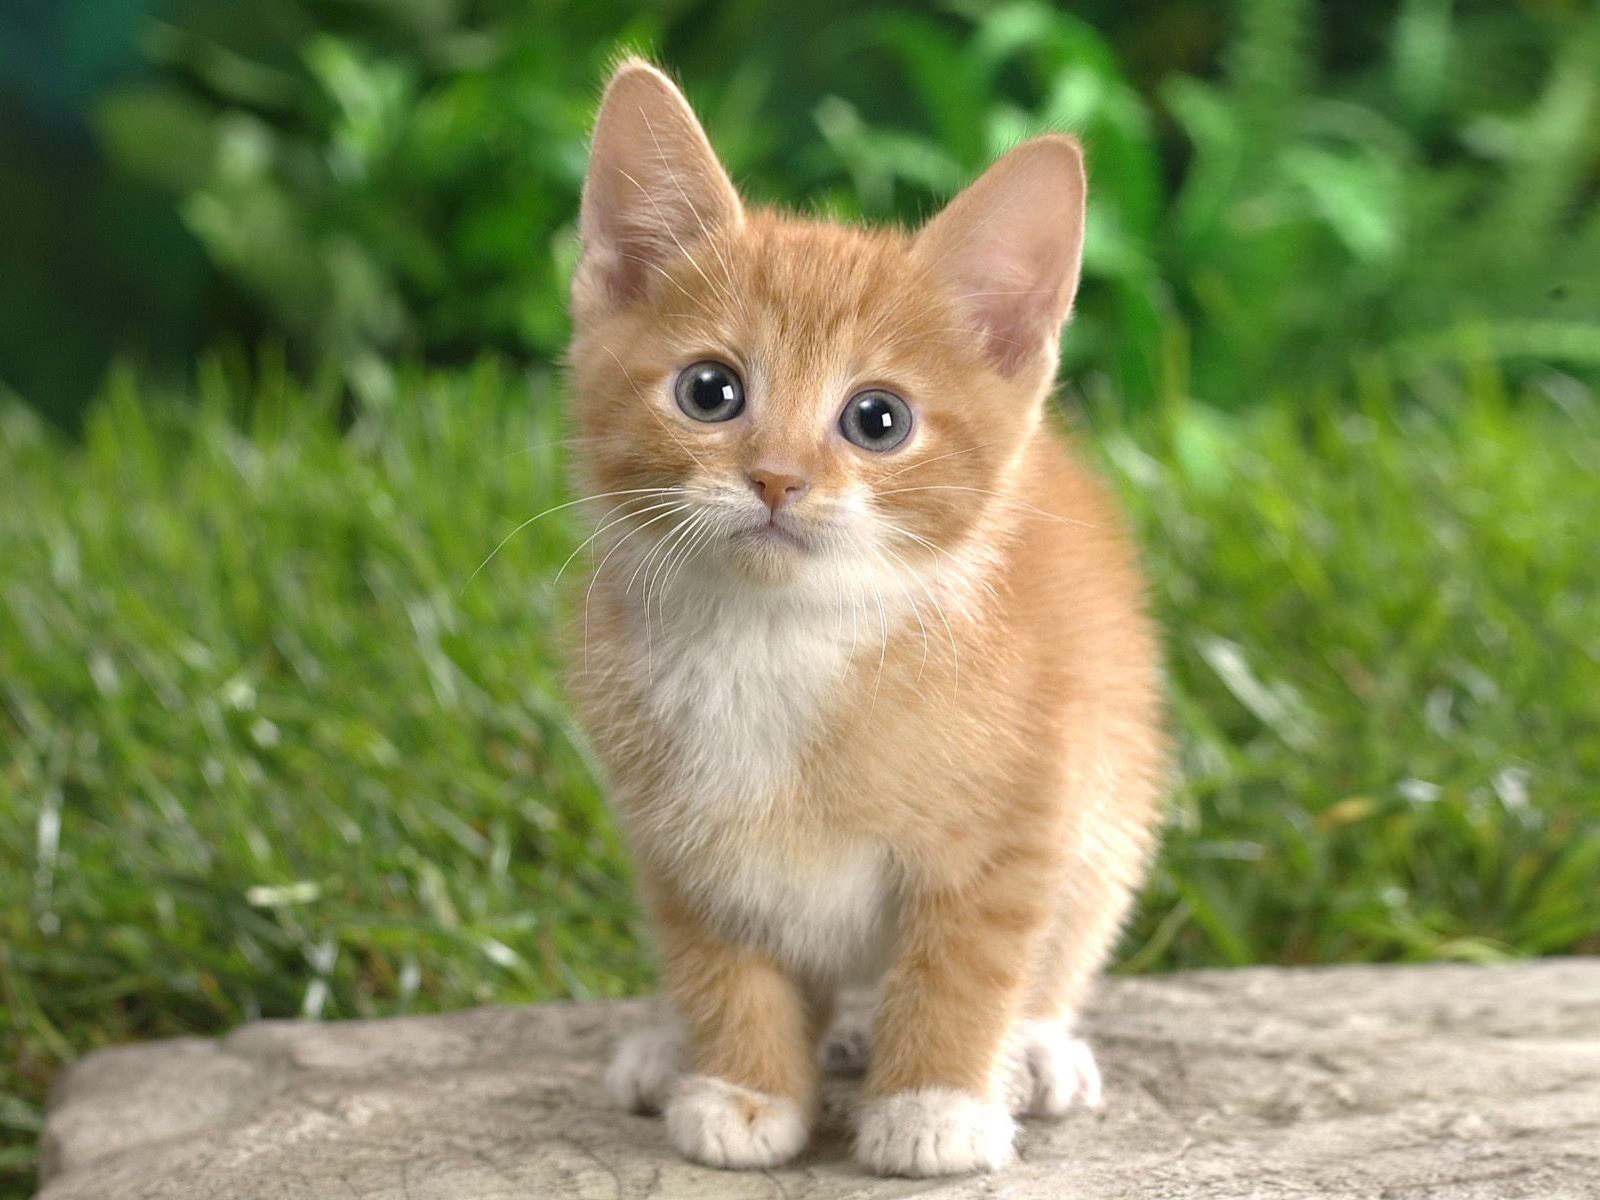 All wallpapers beautiful cats hd wallpapers - Cute kittens hd images ...